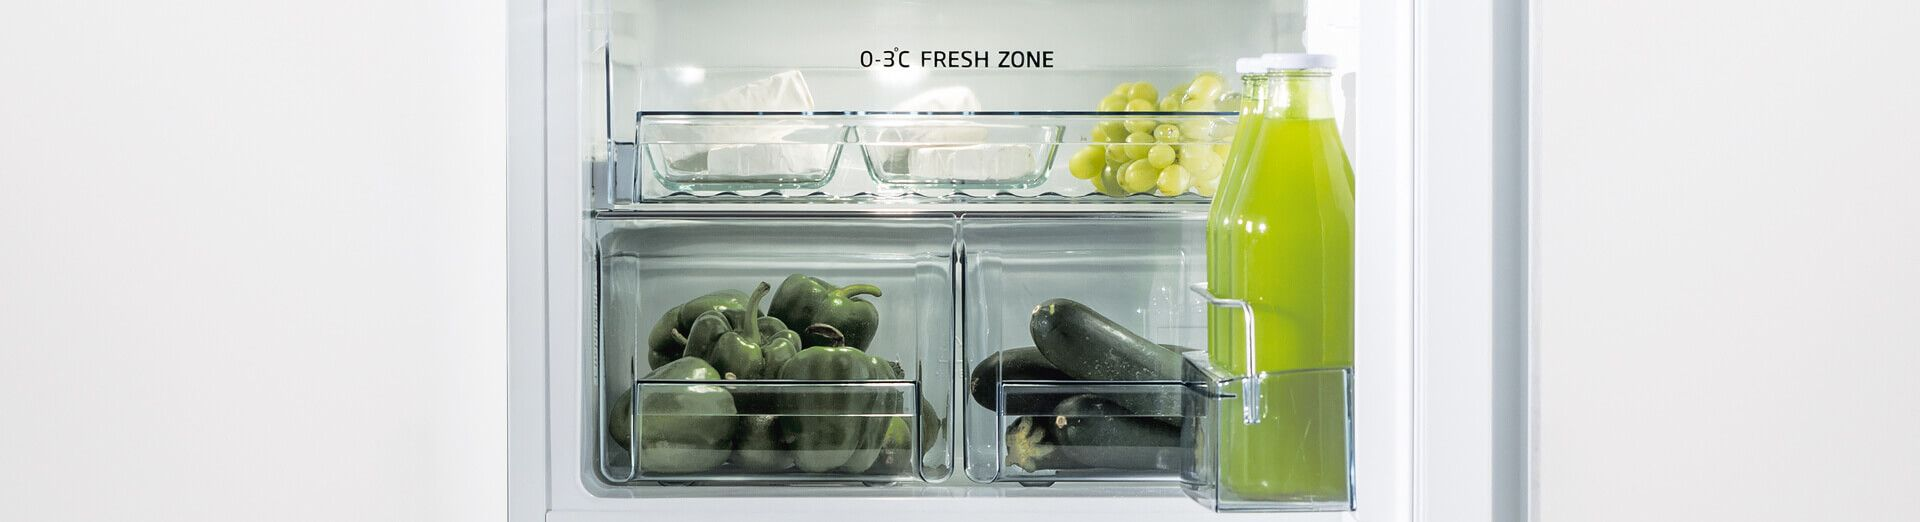 integrated fridge freezer top image